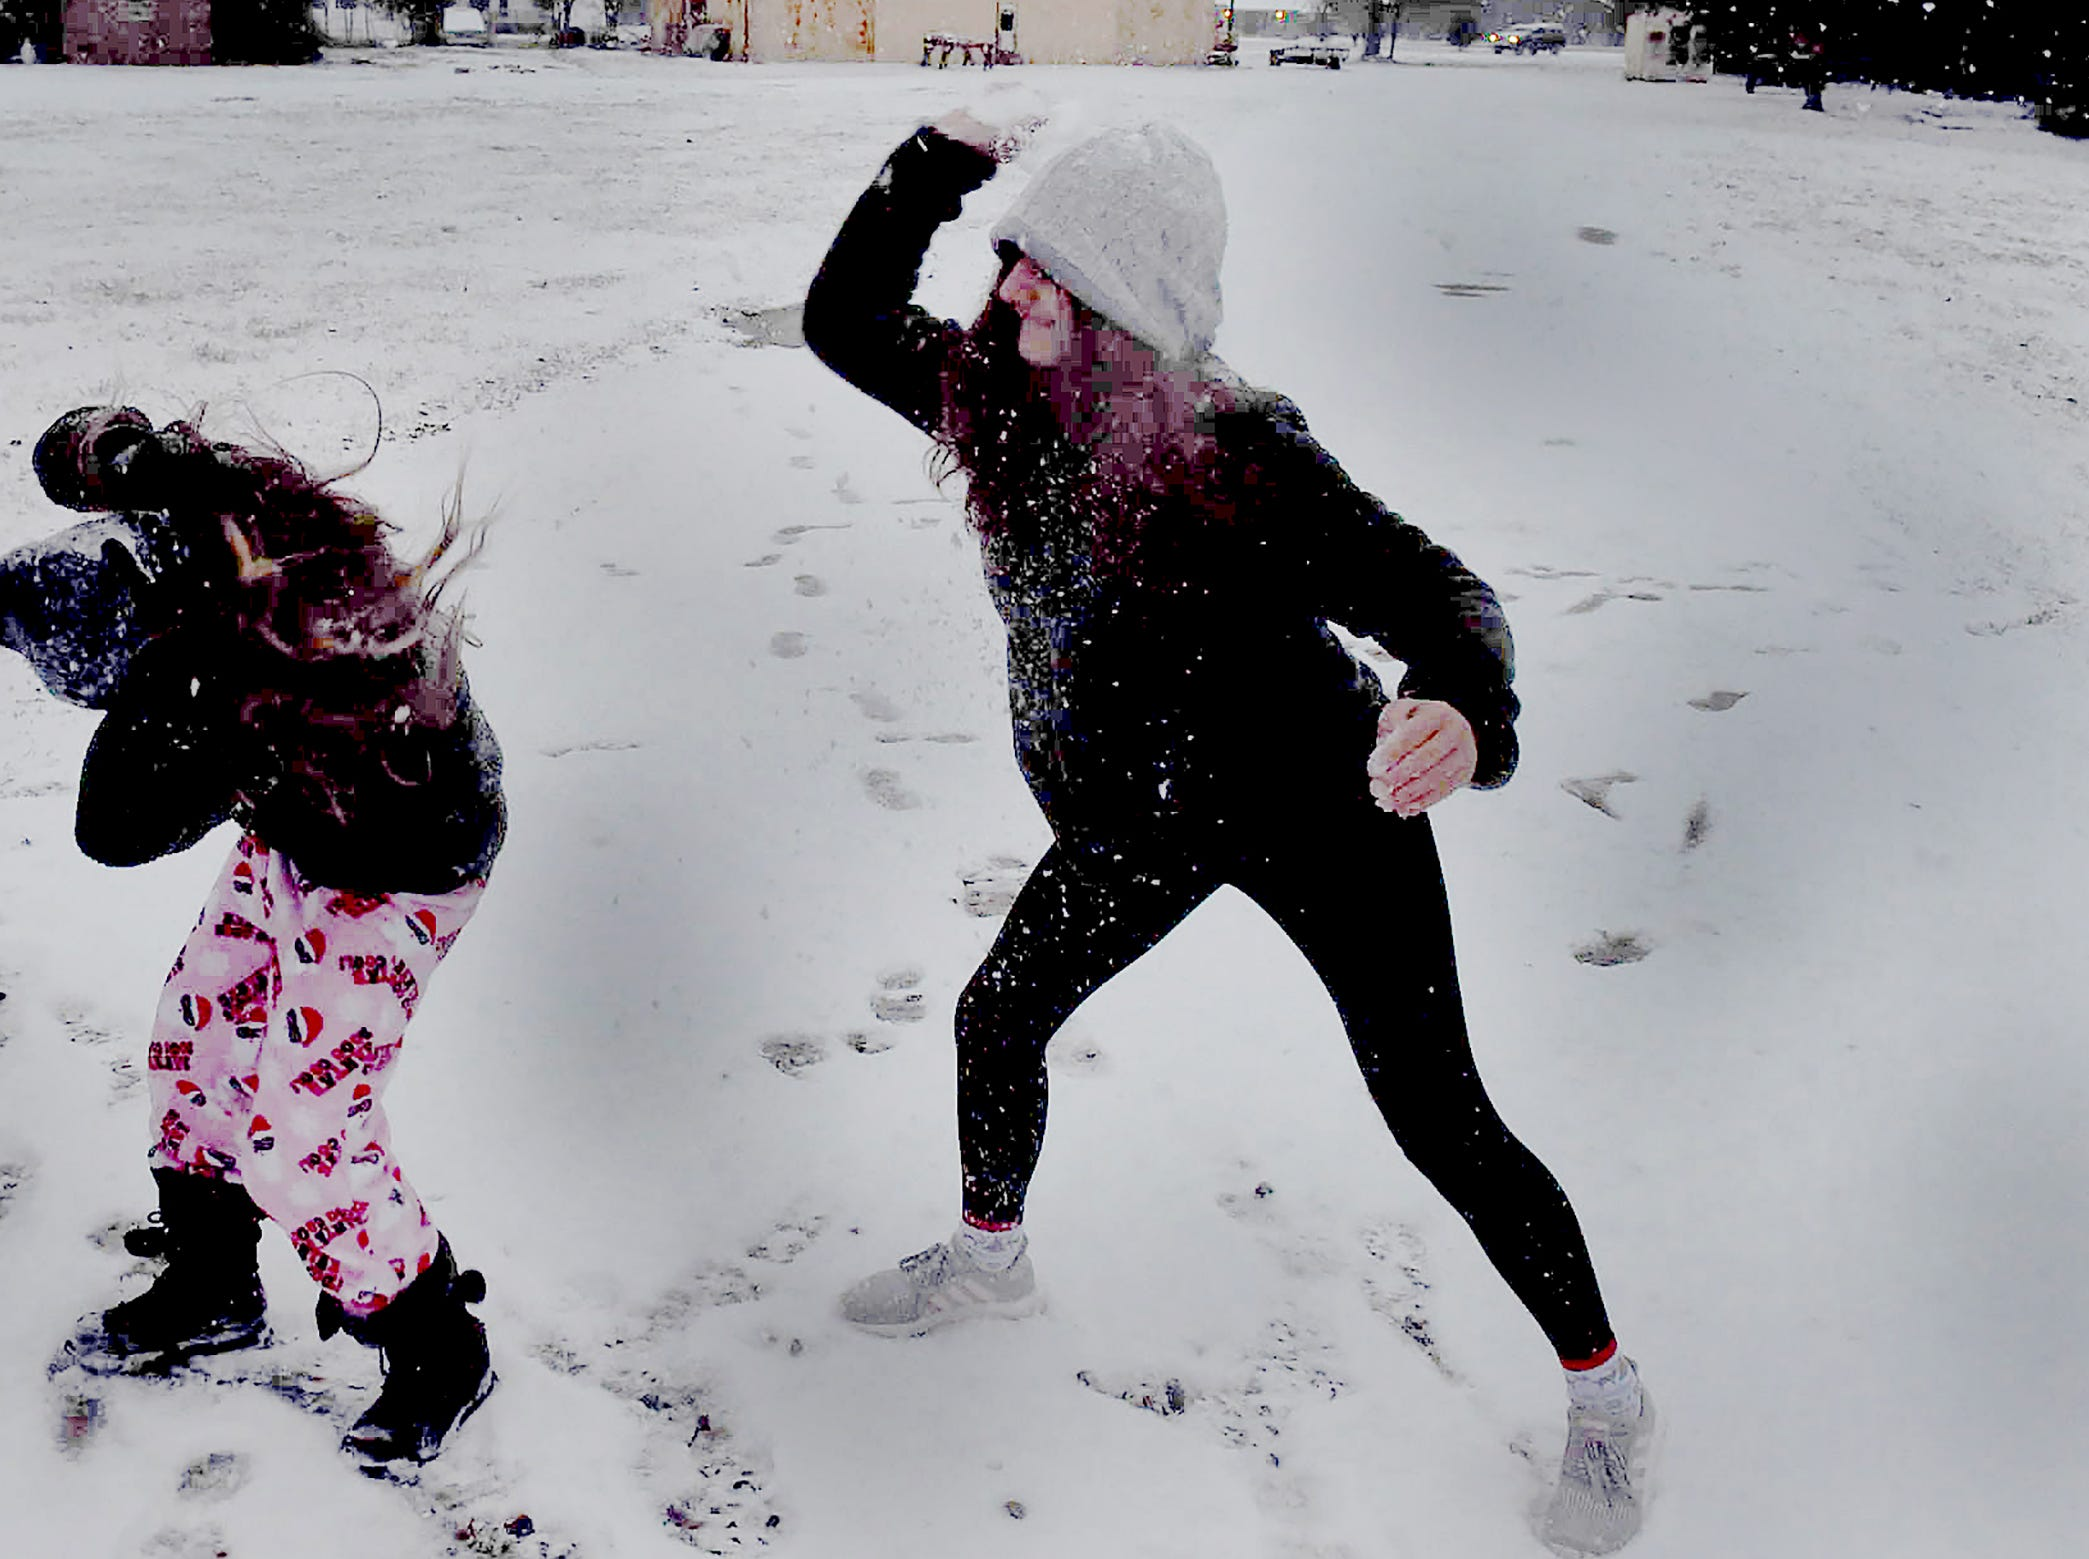 Prairie Laurent residents partake in a snowball fight late Tuesday afternoon as the snow begins to fall.